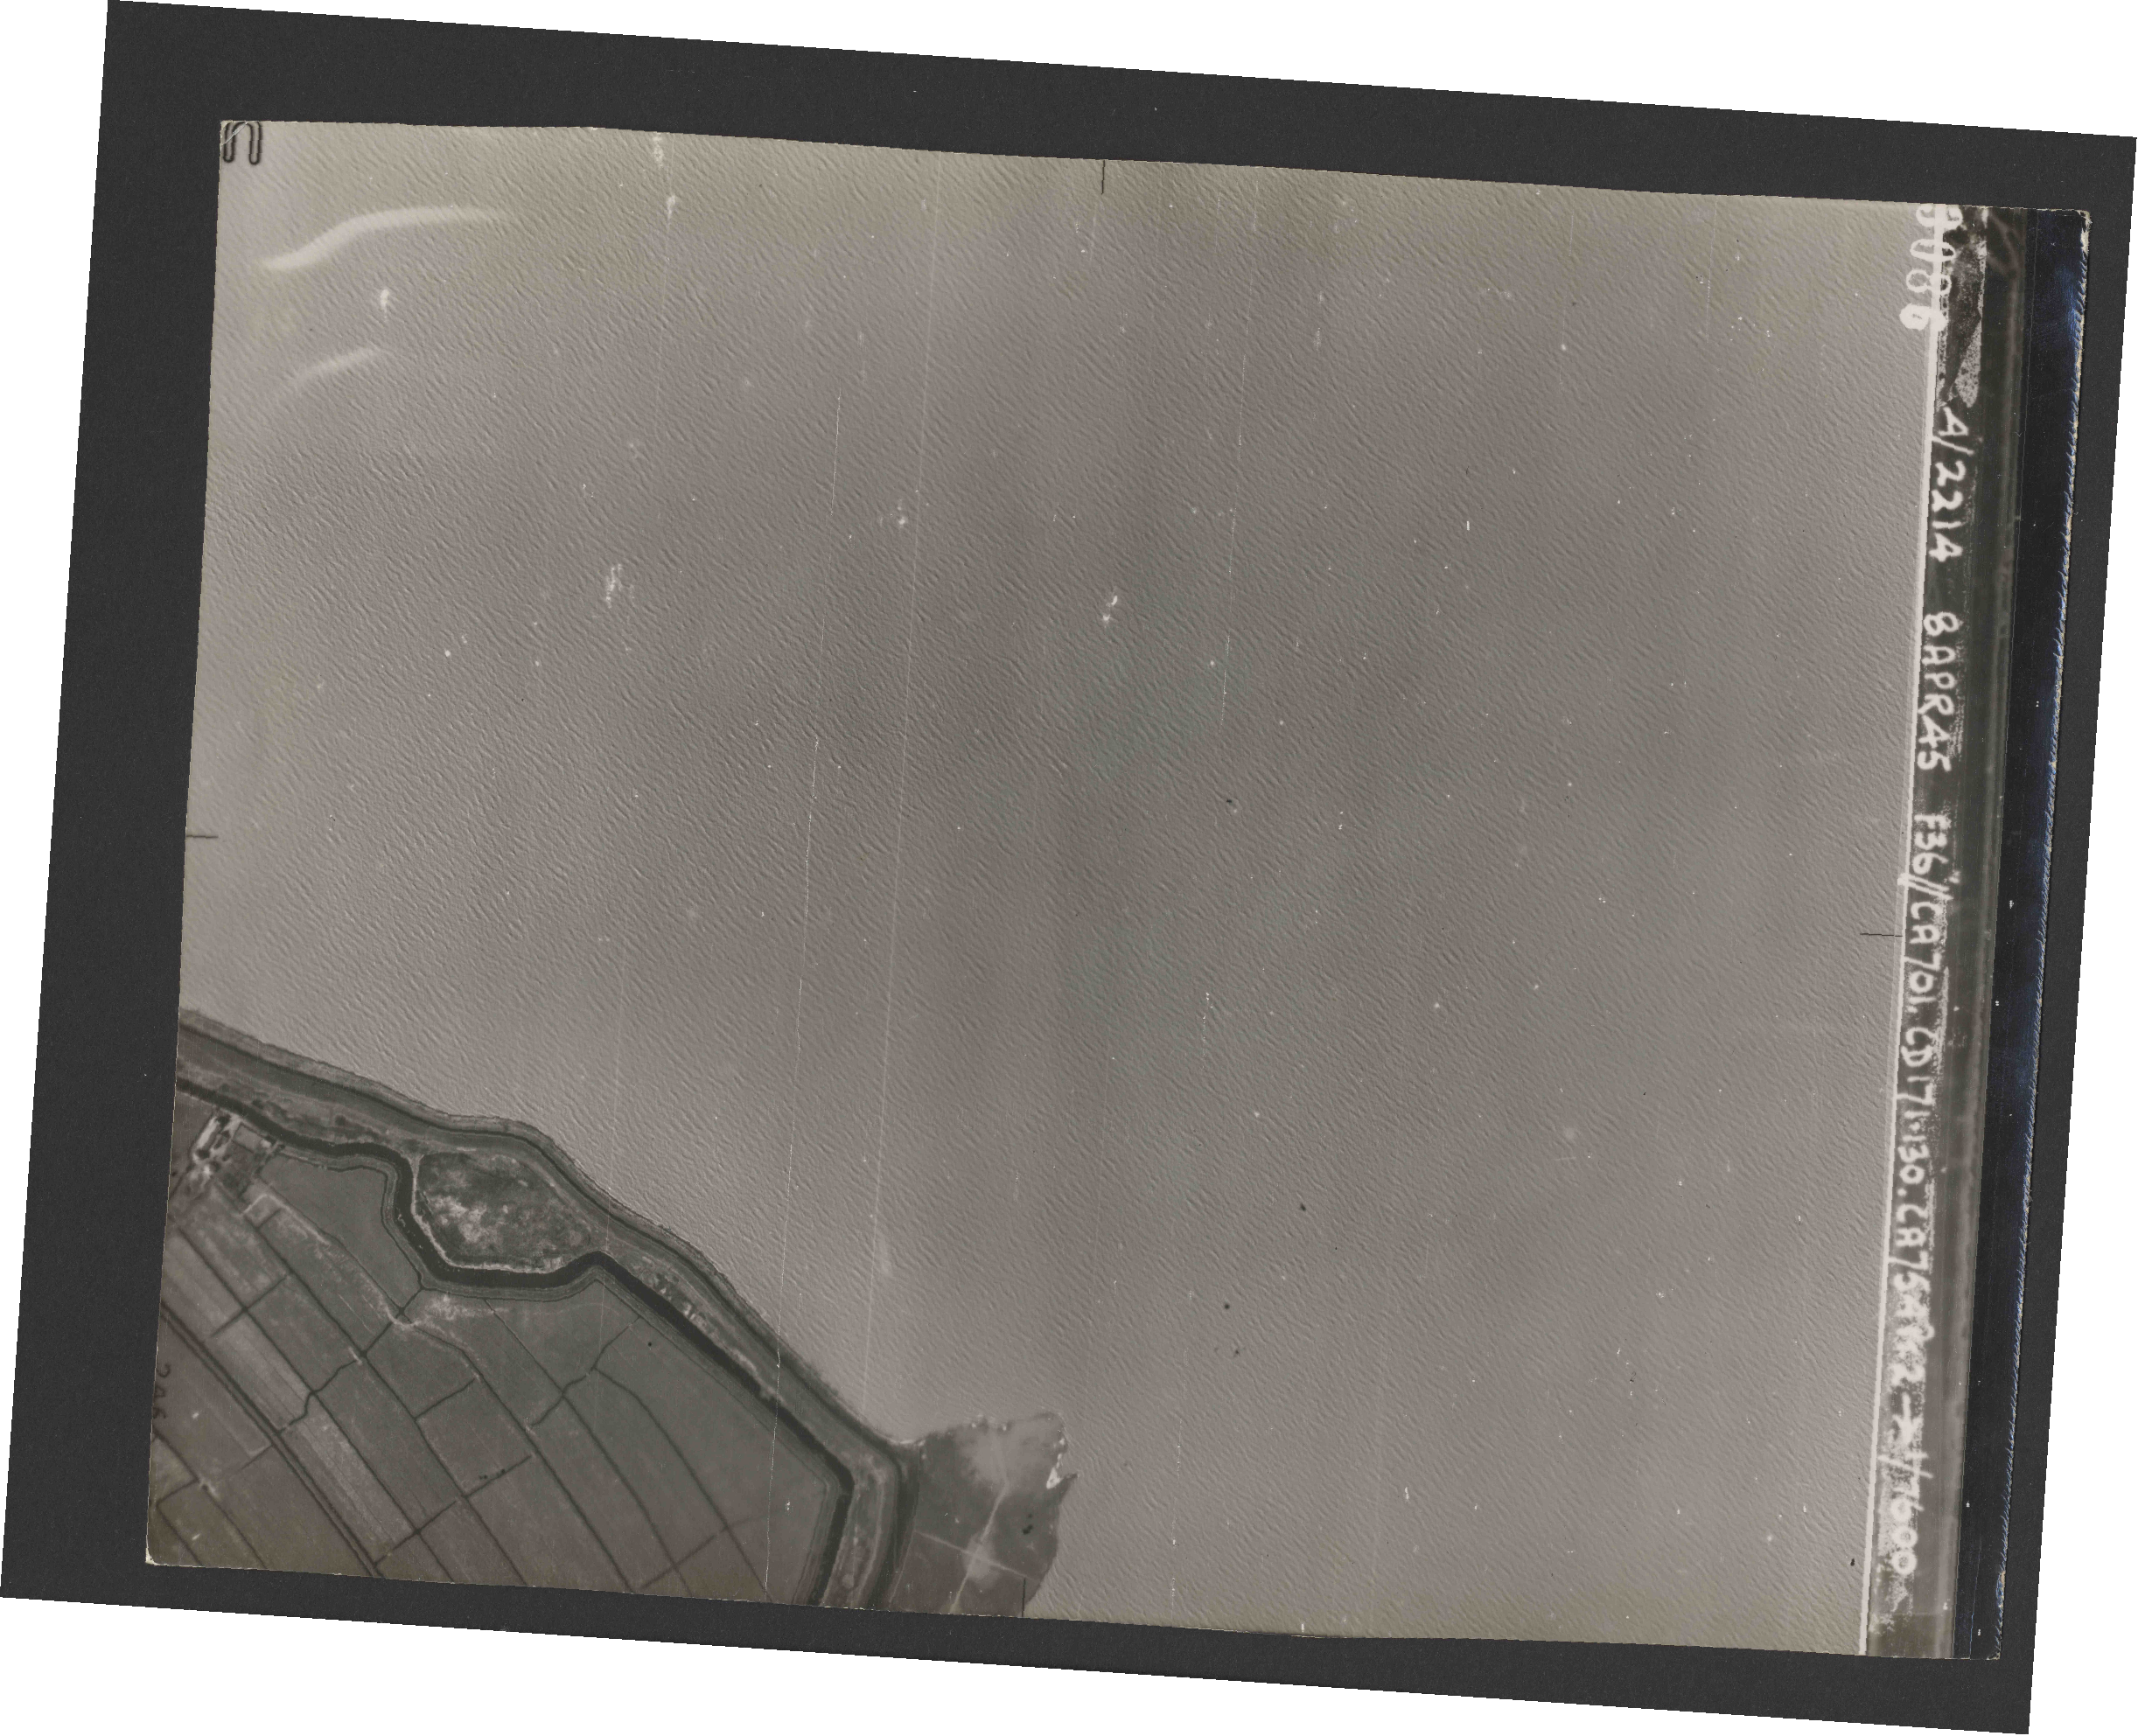 Collection RAF aerial photos 1940-1945 - flight 123, run 04, photo 3086